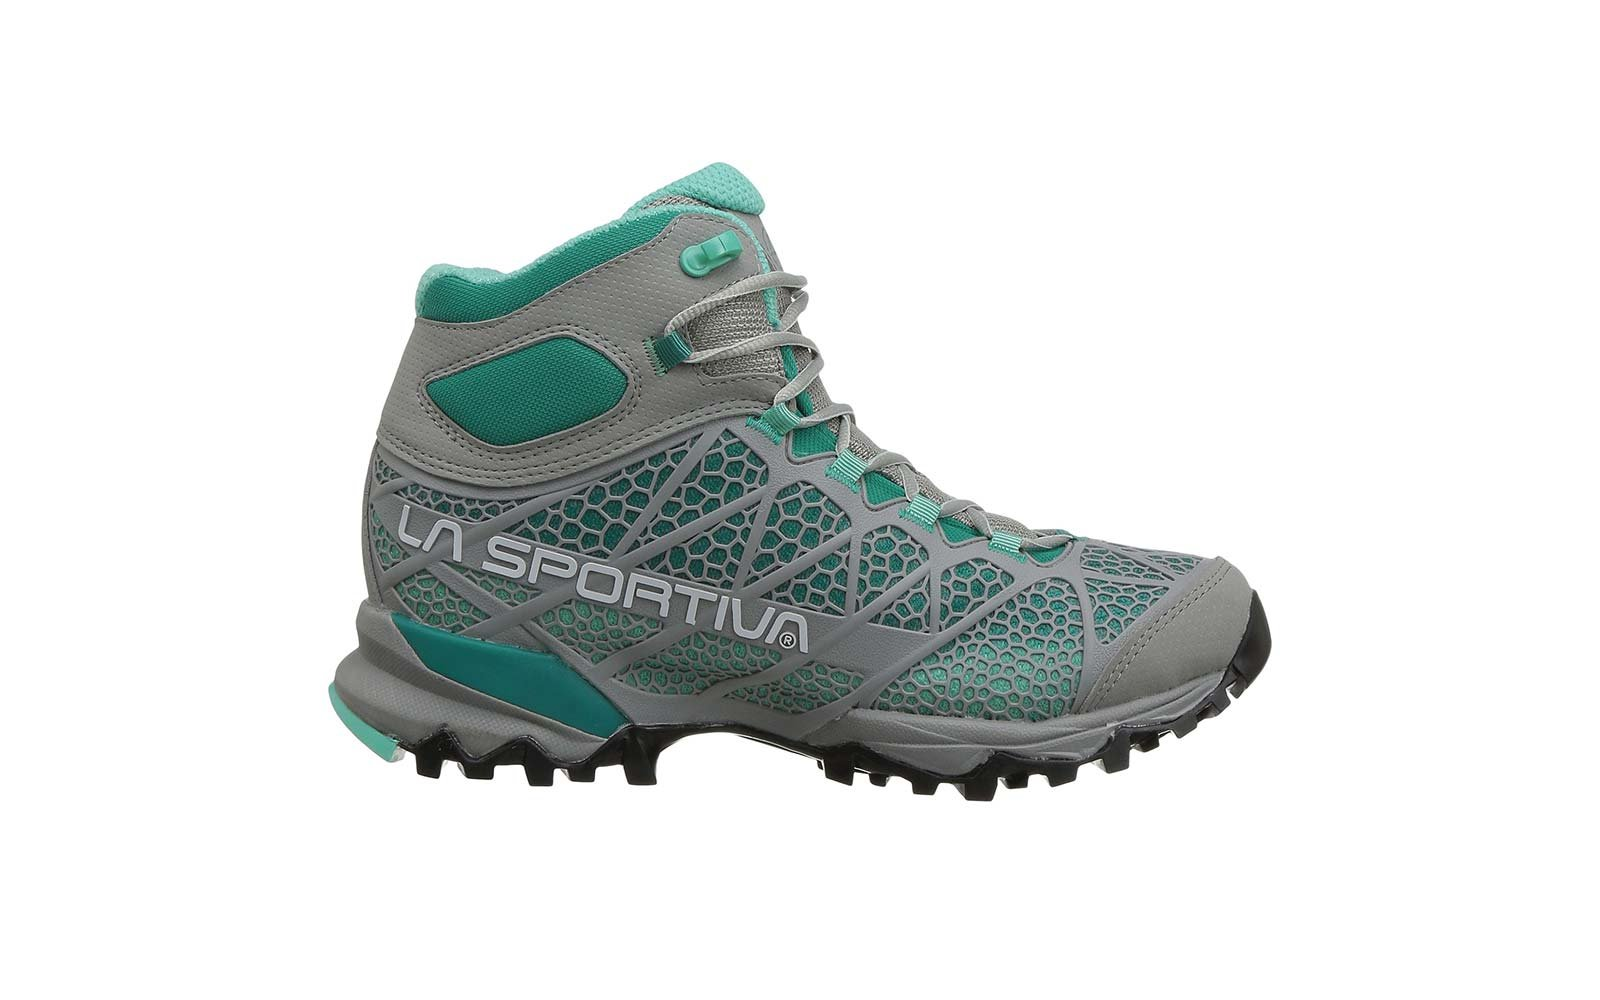 La Sportiva Female Hiking Boots